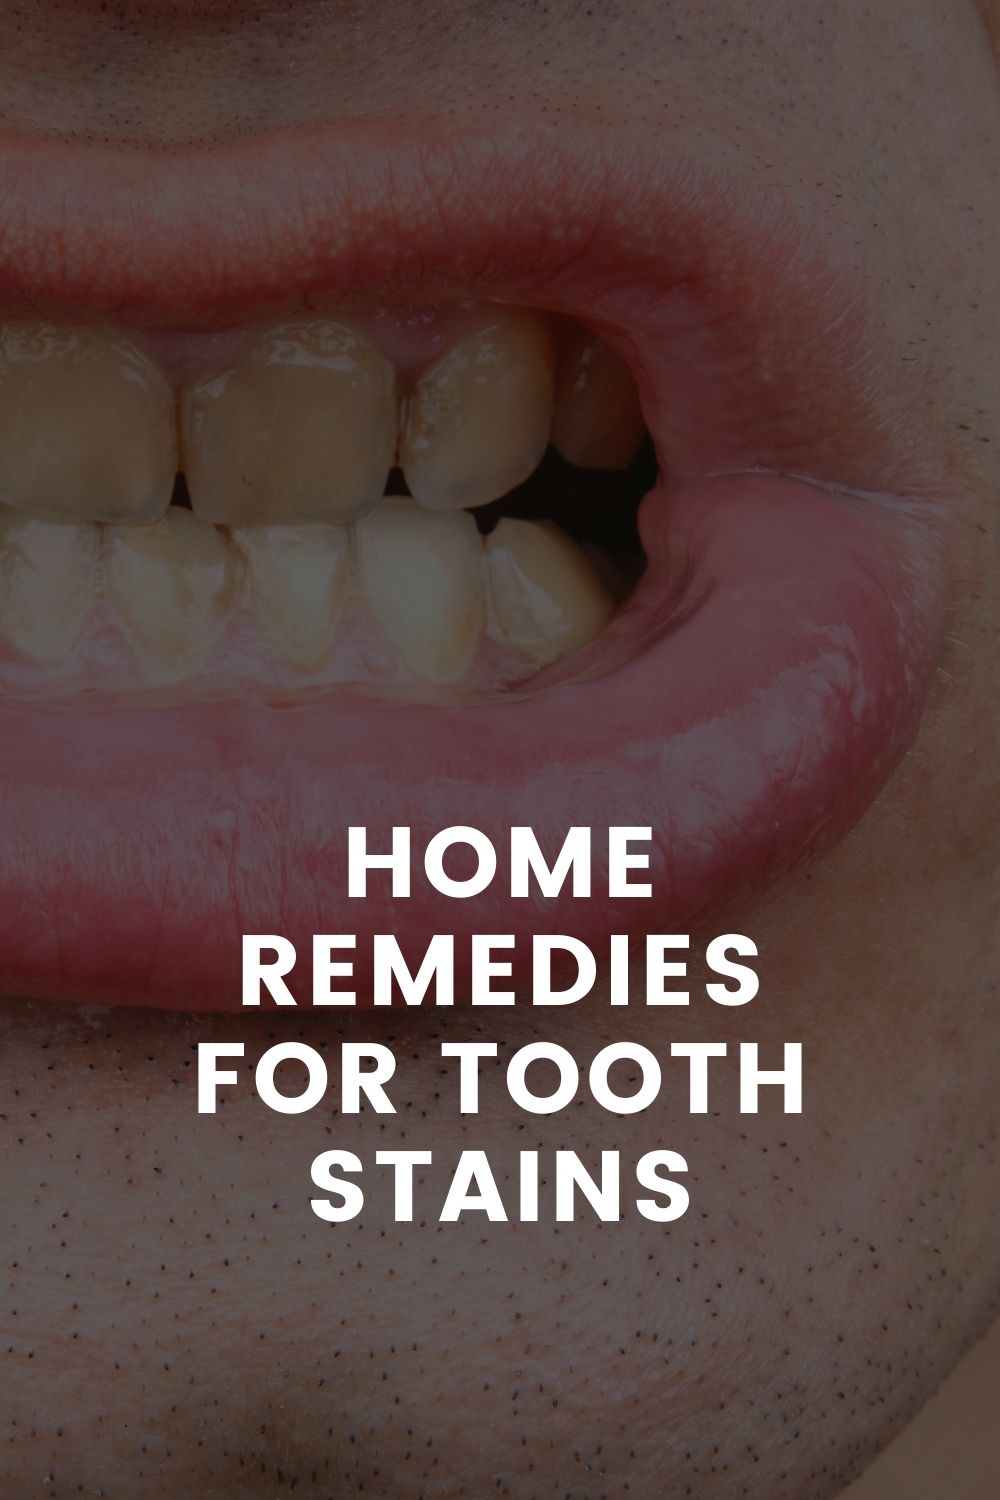 Home Remedies For Tooth Stains